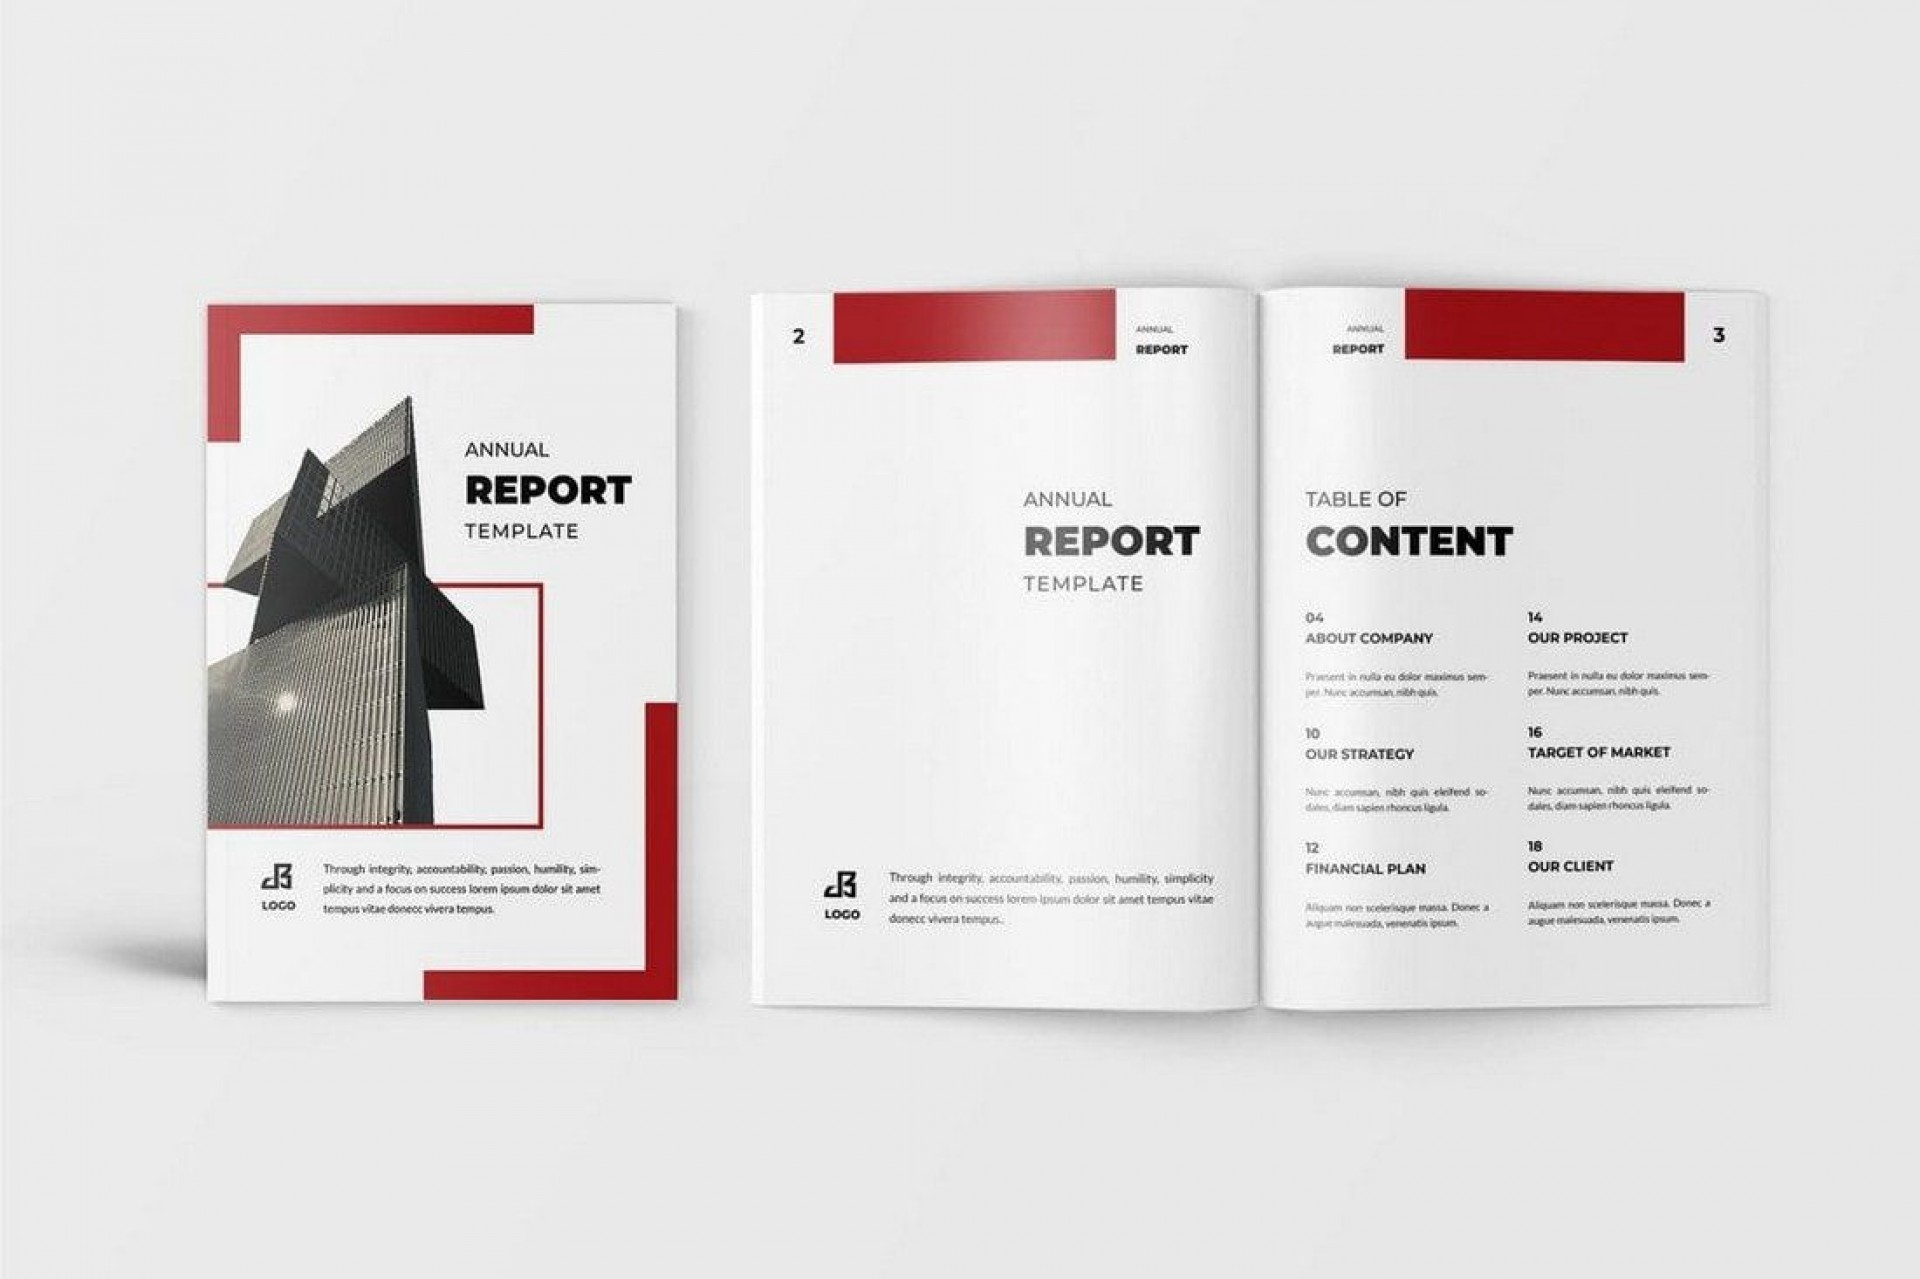 009 Staggering Free Adobe Indesign Annual Report Template Image 1920